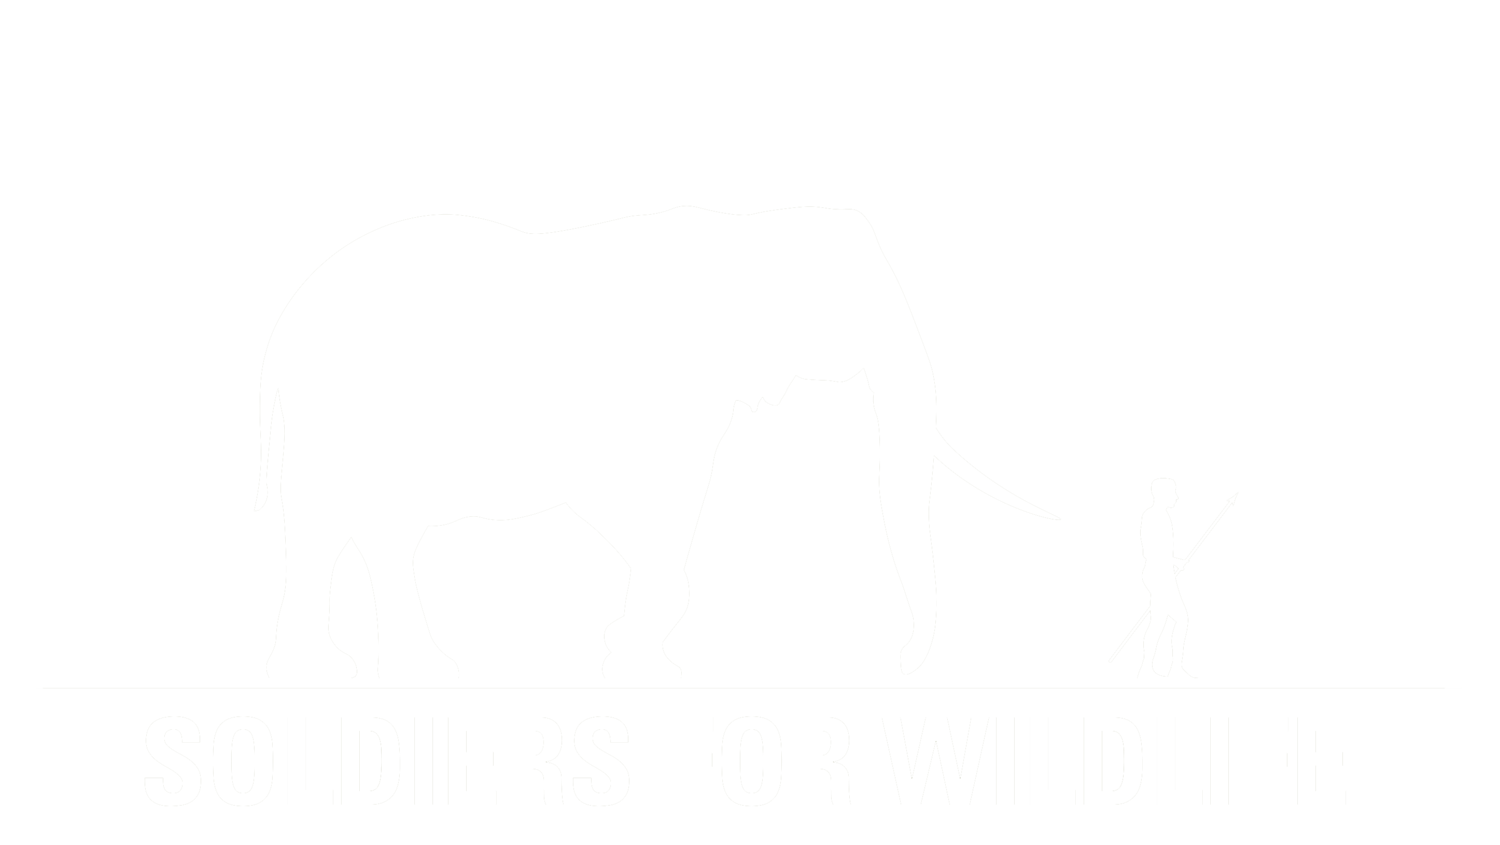 Soldiers For Wildlife